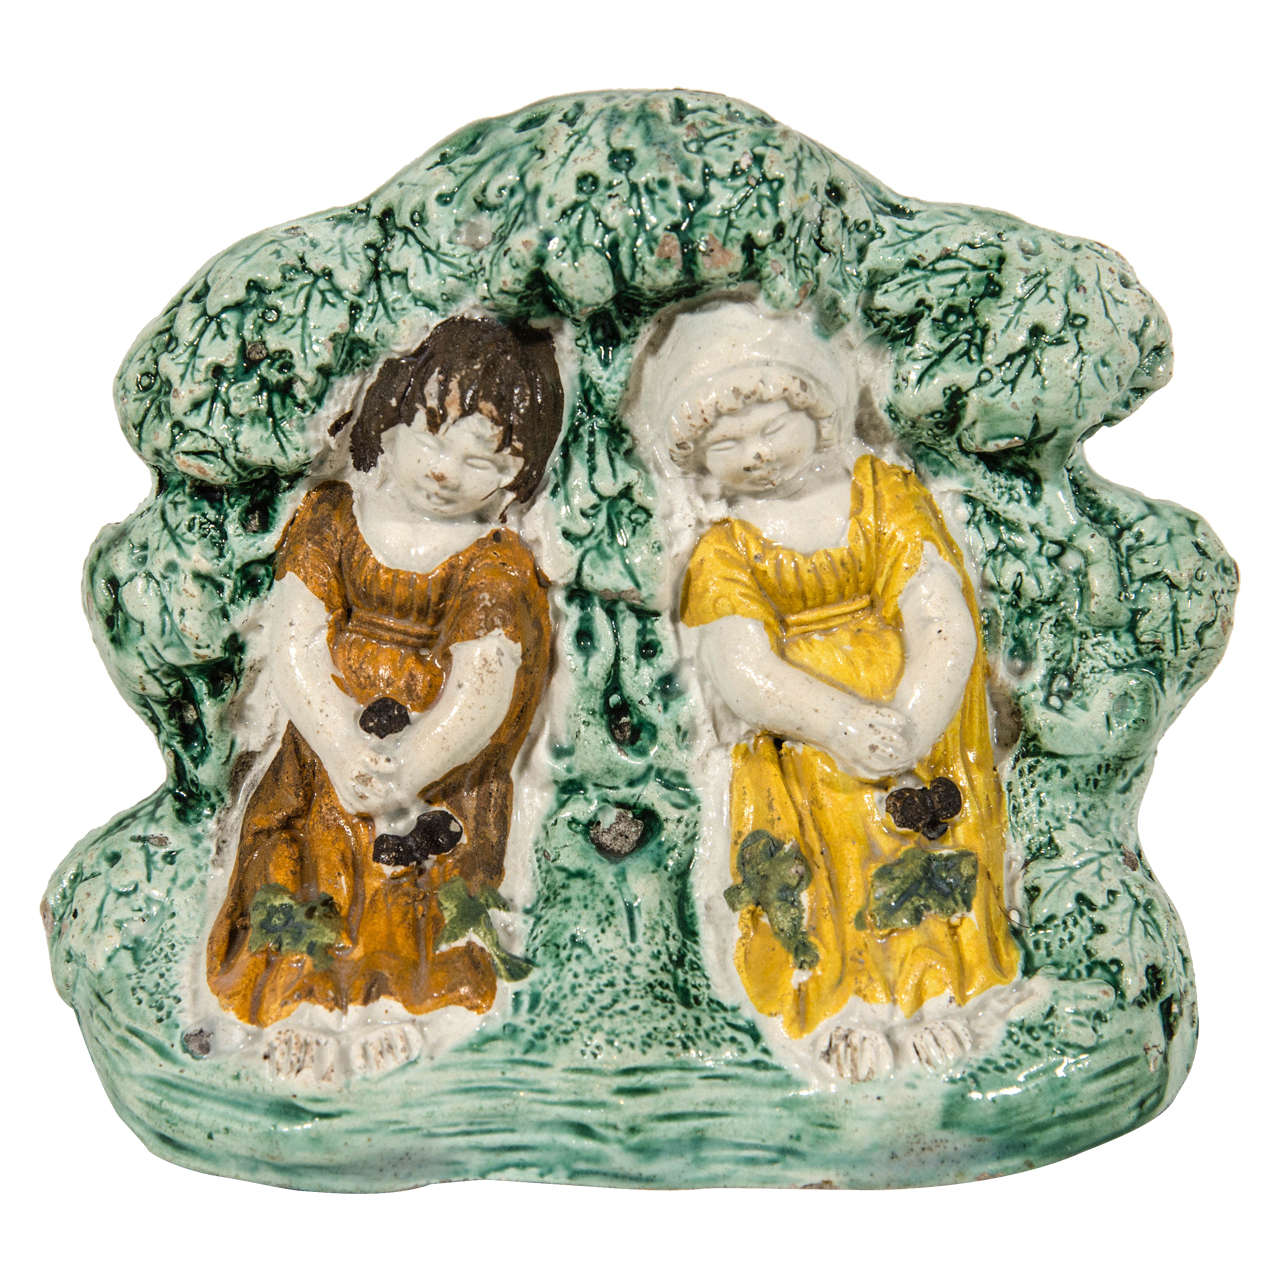 Antique Staffordshire Figure Group 'Babes in the Wood'